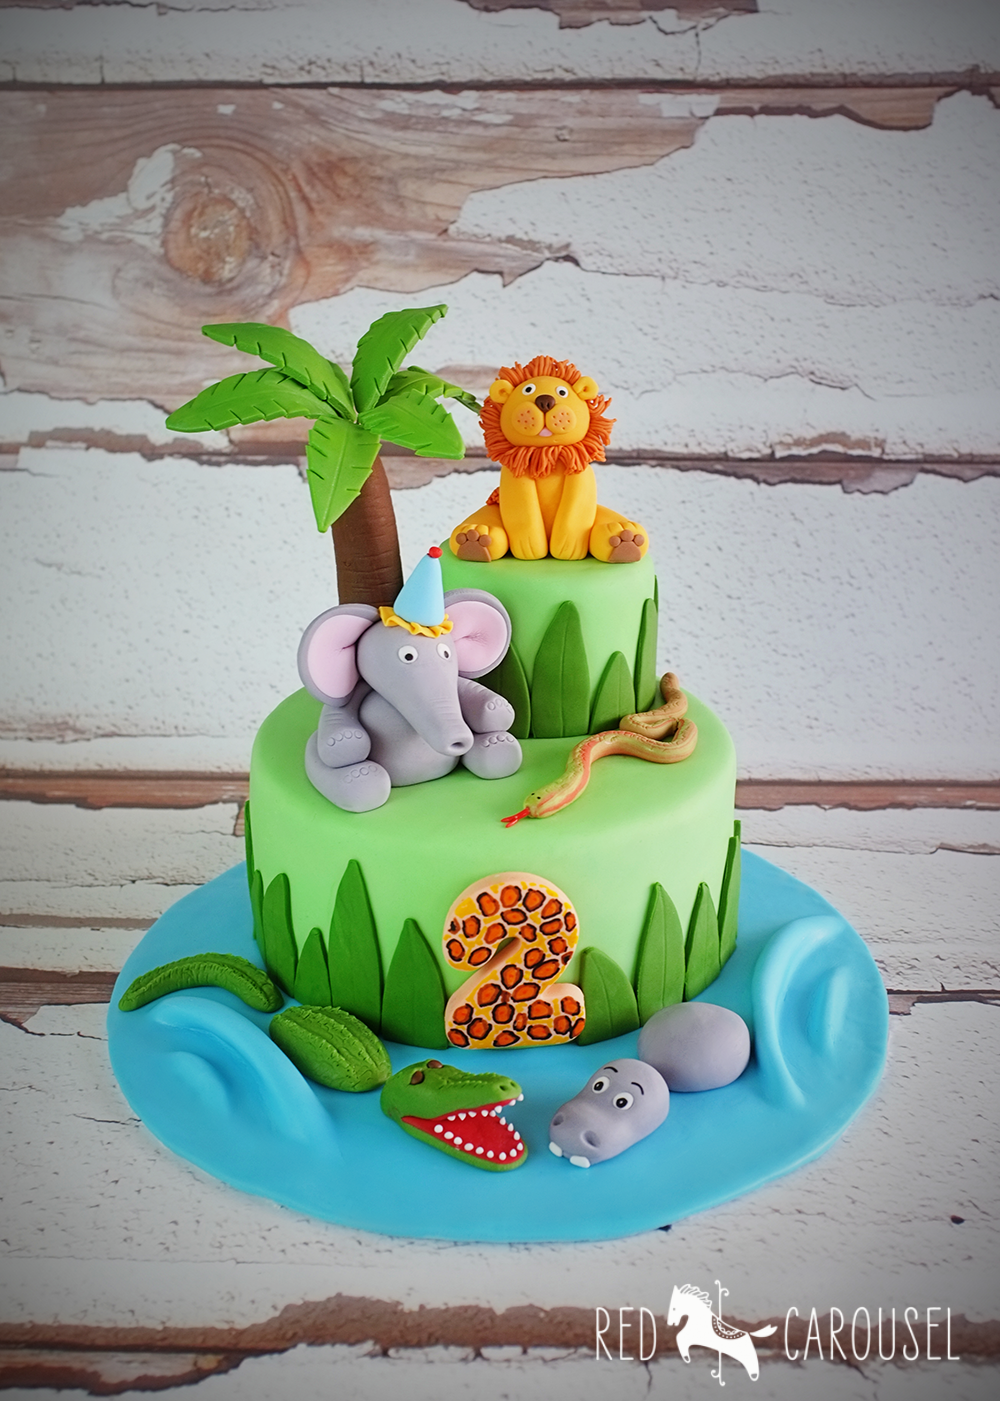 Jungle Birthday Cake Images : Jungle Birthday Cakes on Pinterest Jungle Cake, Jungle ...